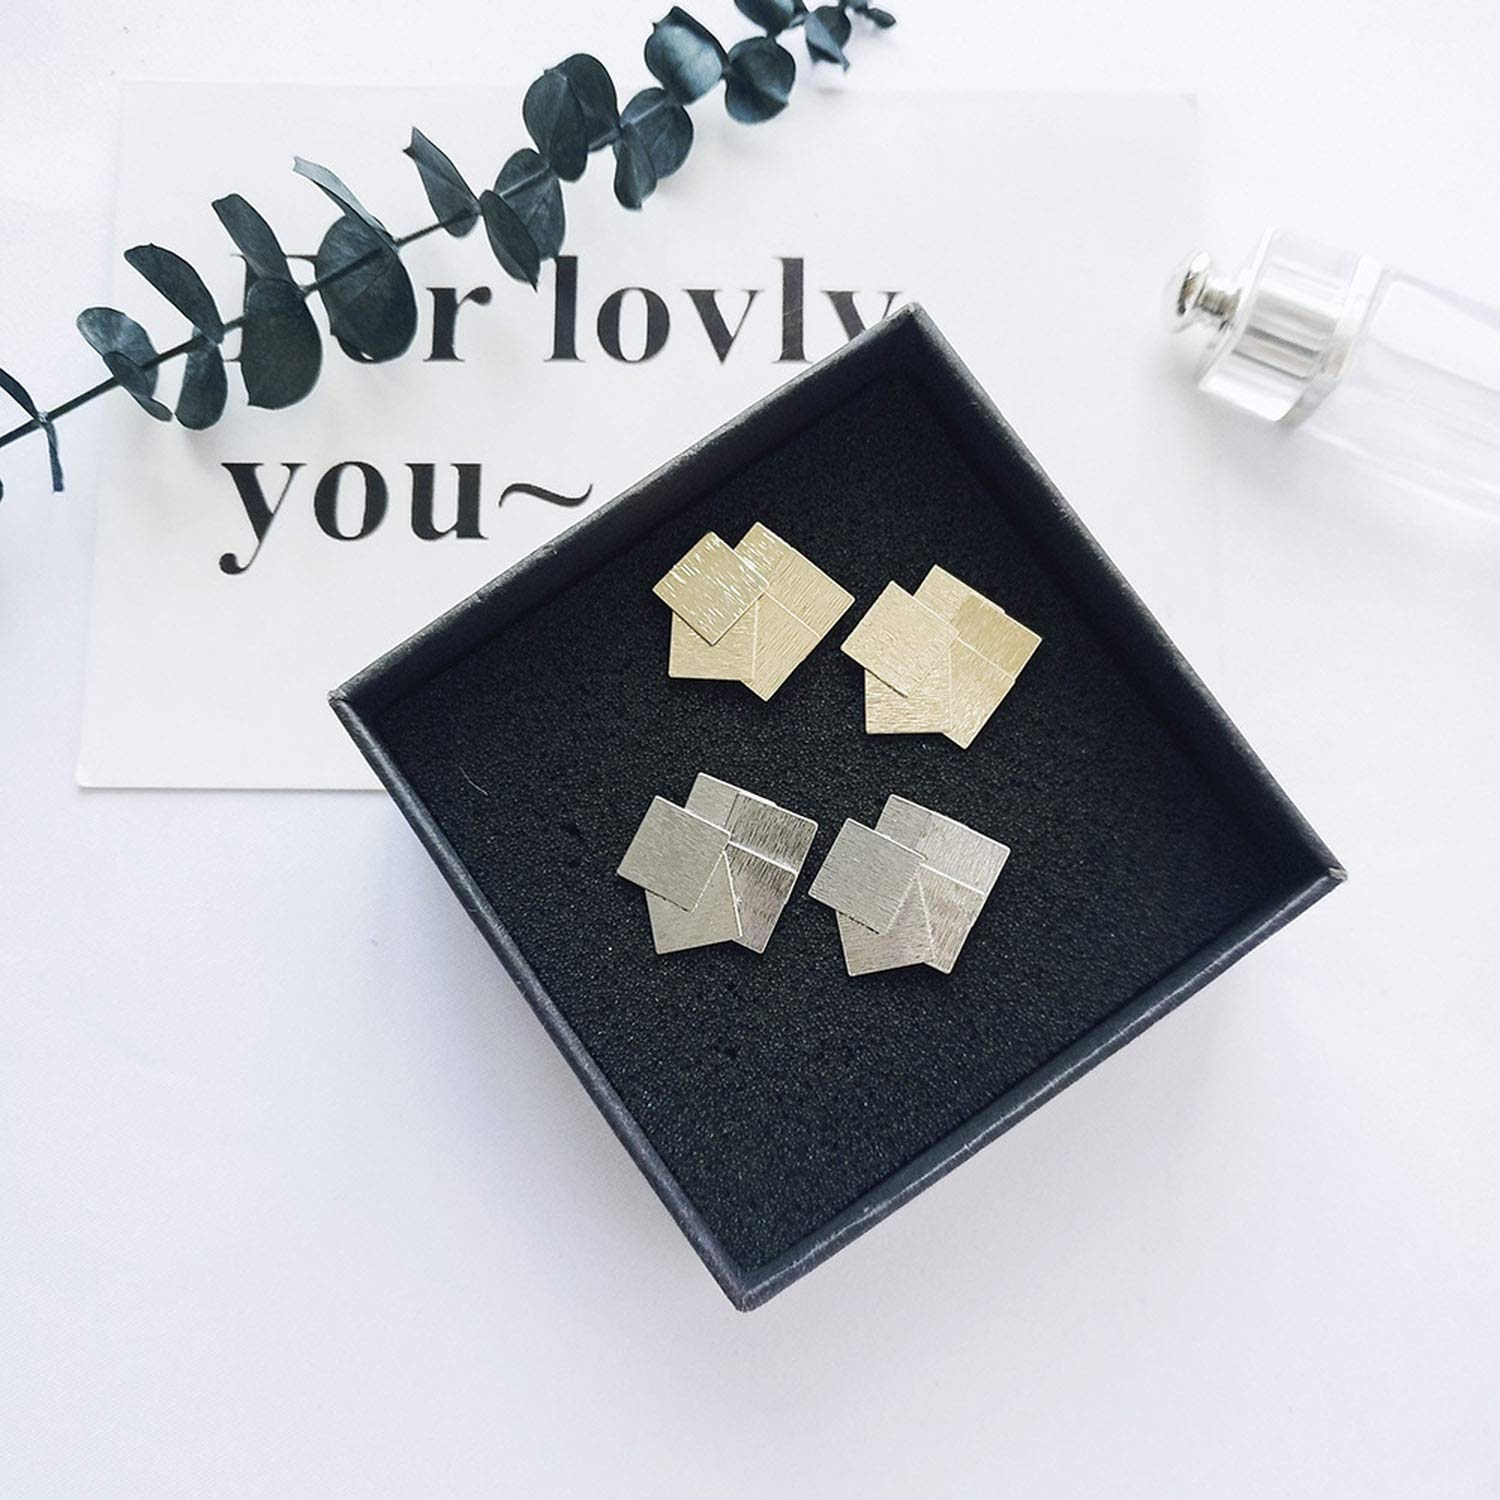 hdfhdfhd 2019 Exquisite Metal Square Copper Combination Stud Earrings Gold Earrings Statement Earring for Girls for Woman,Yin